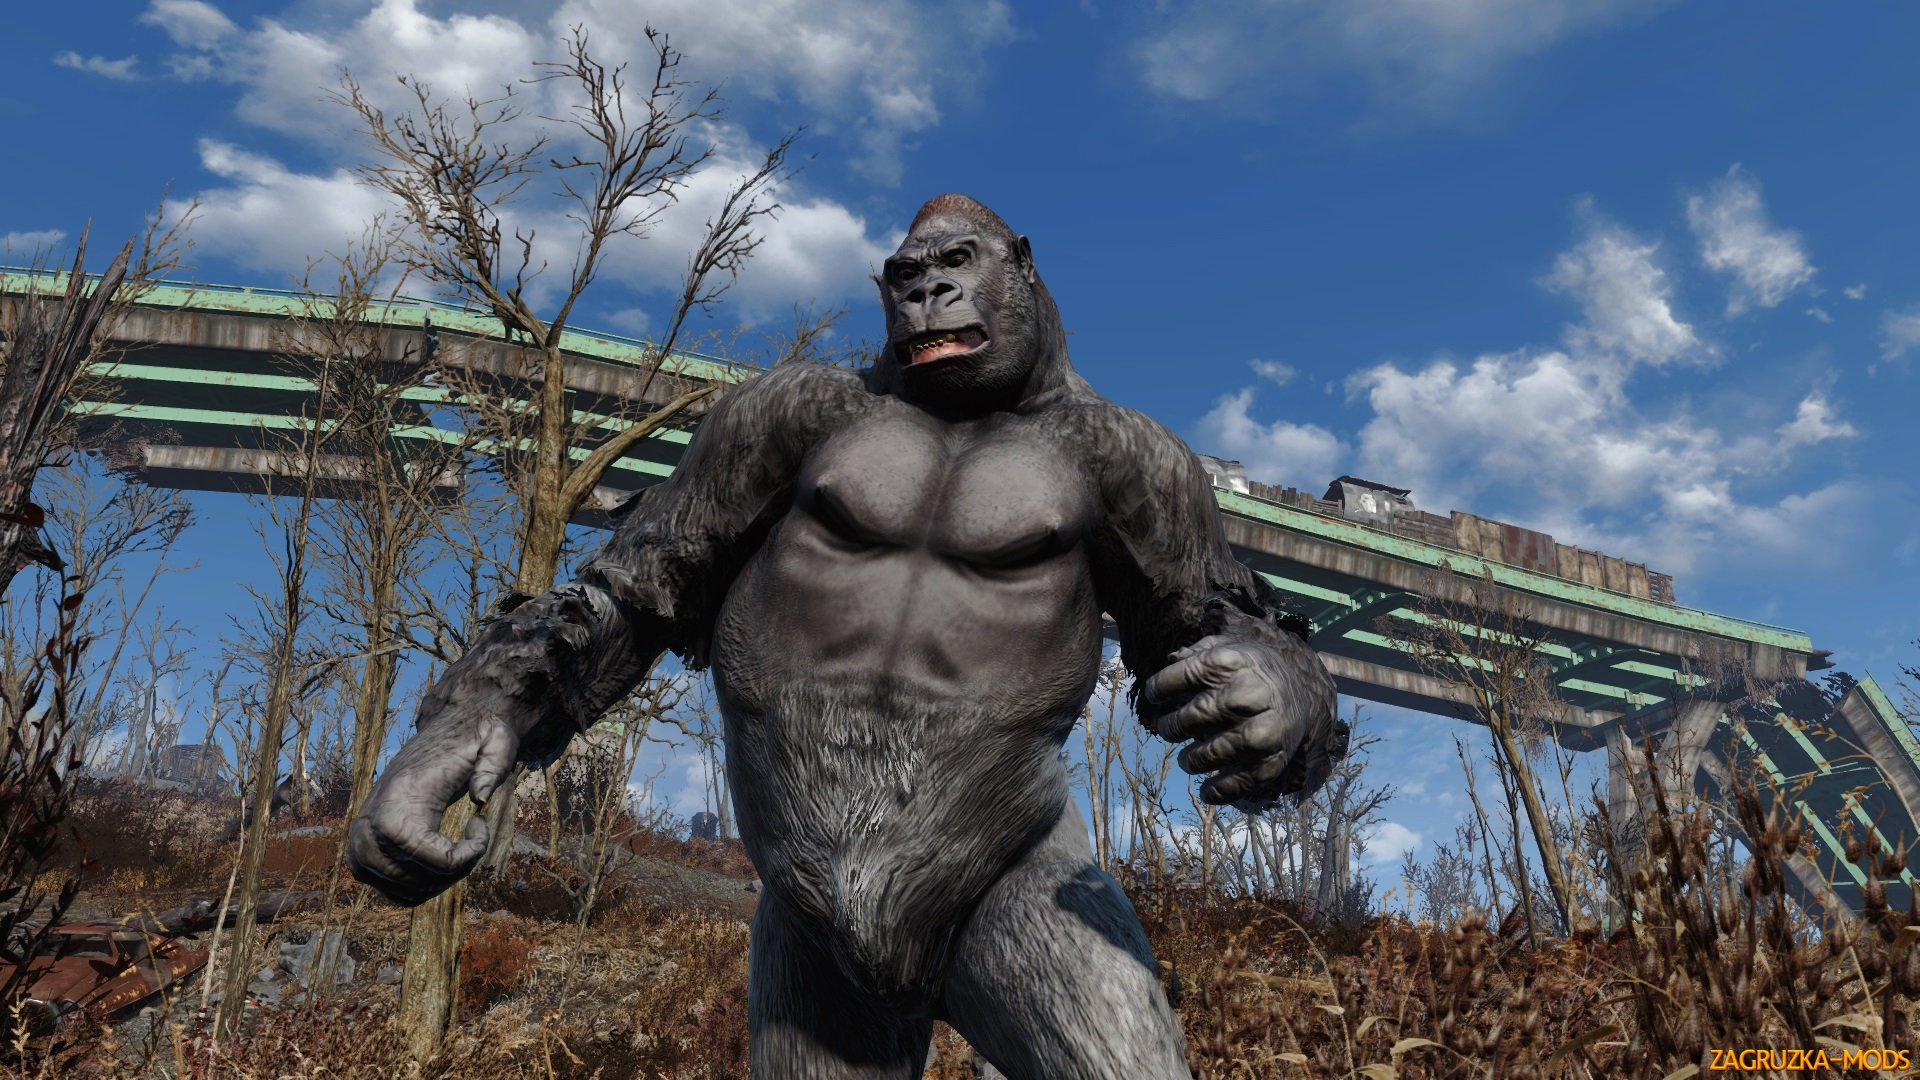 Wasteland of the Apes v1.0 by Sursion for Fallout 4